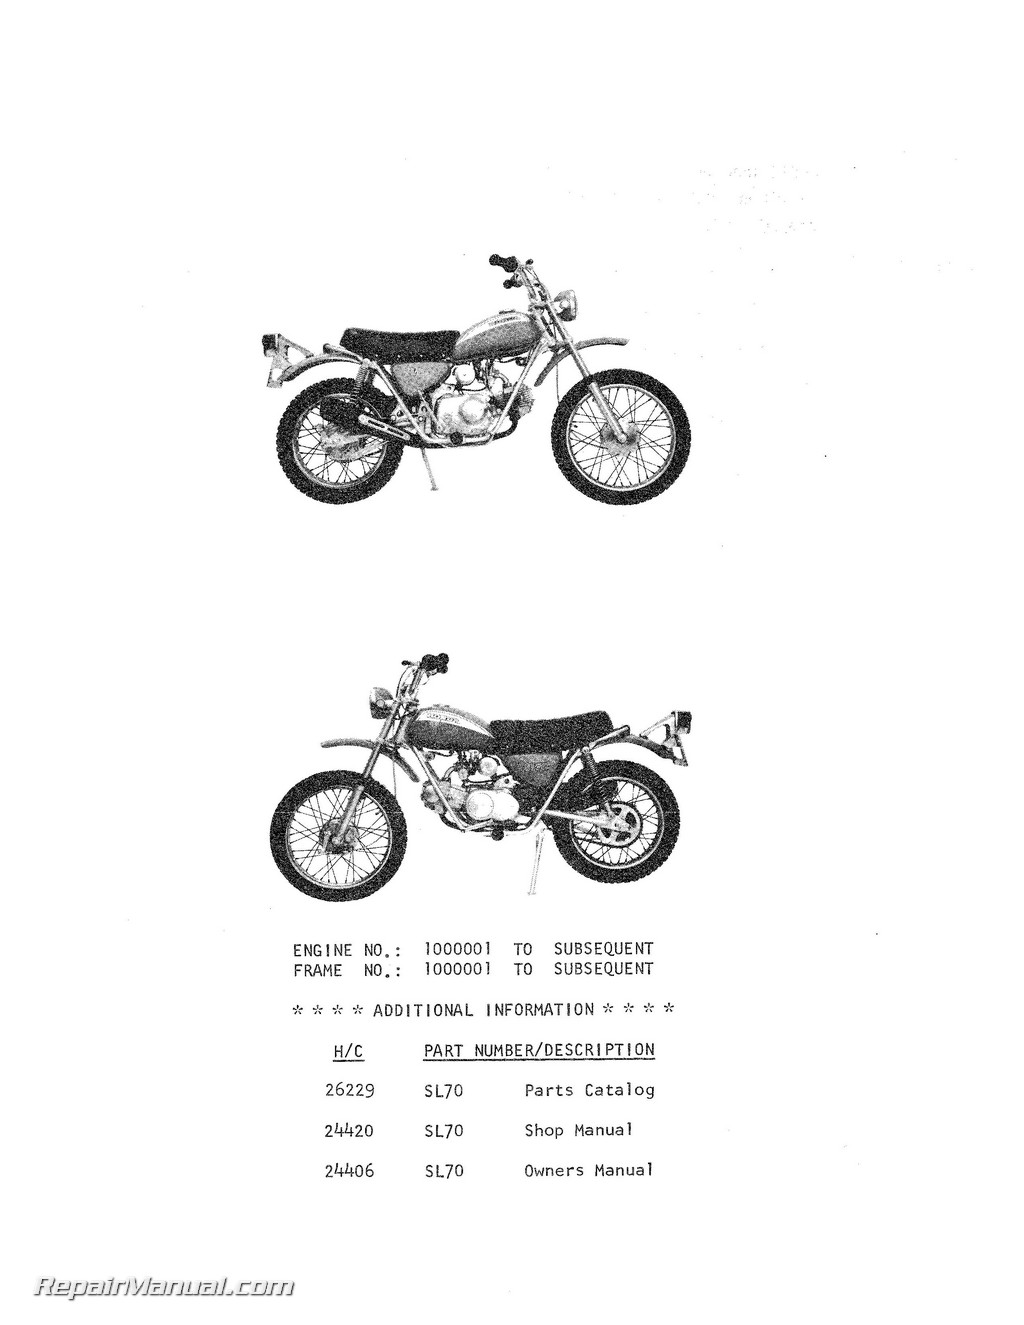 Honda SL70 Motorcycle Parts Manual